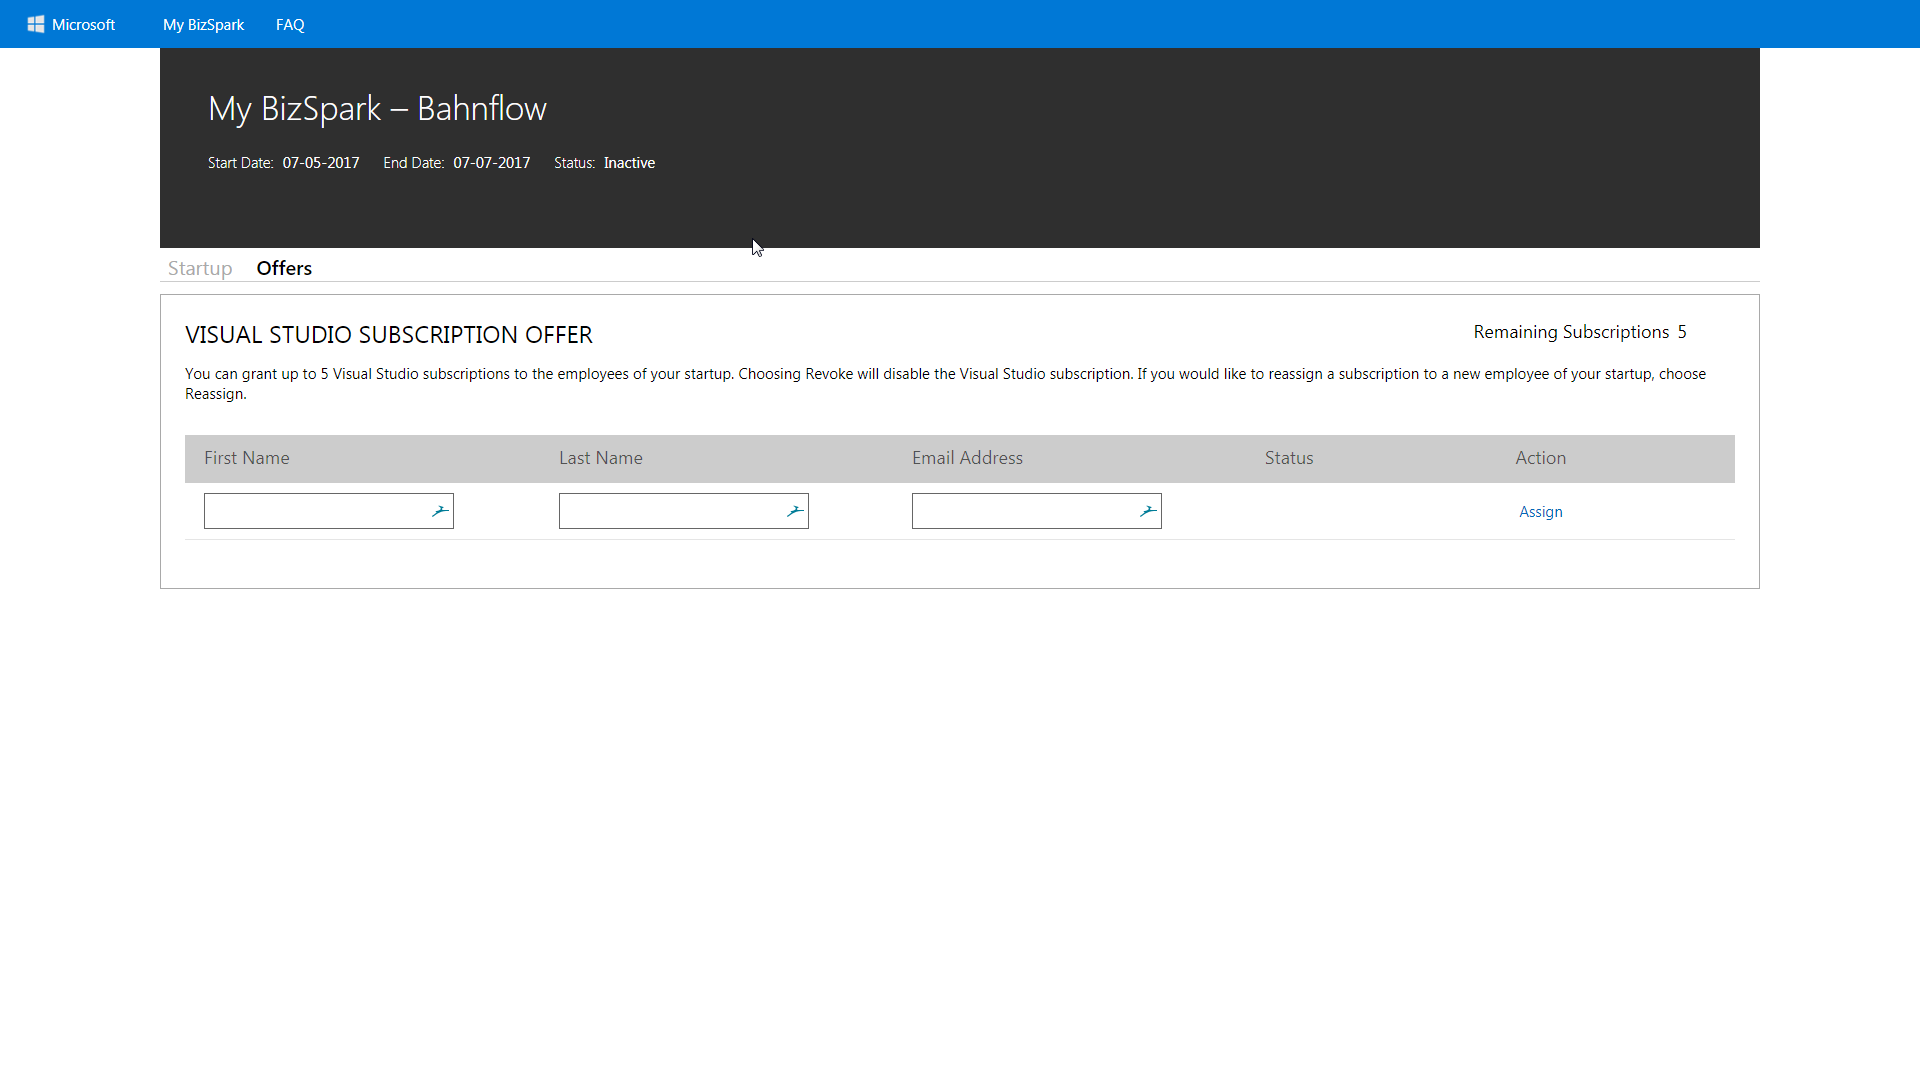 Bizspark Account Inactive And Graduation Offer Unavailable